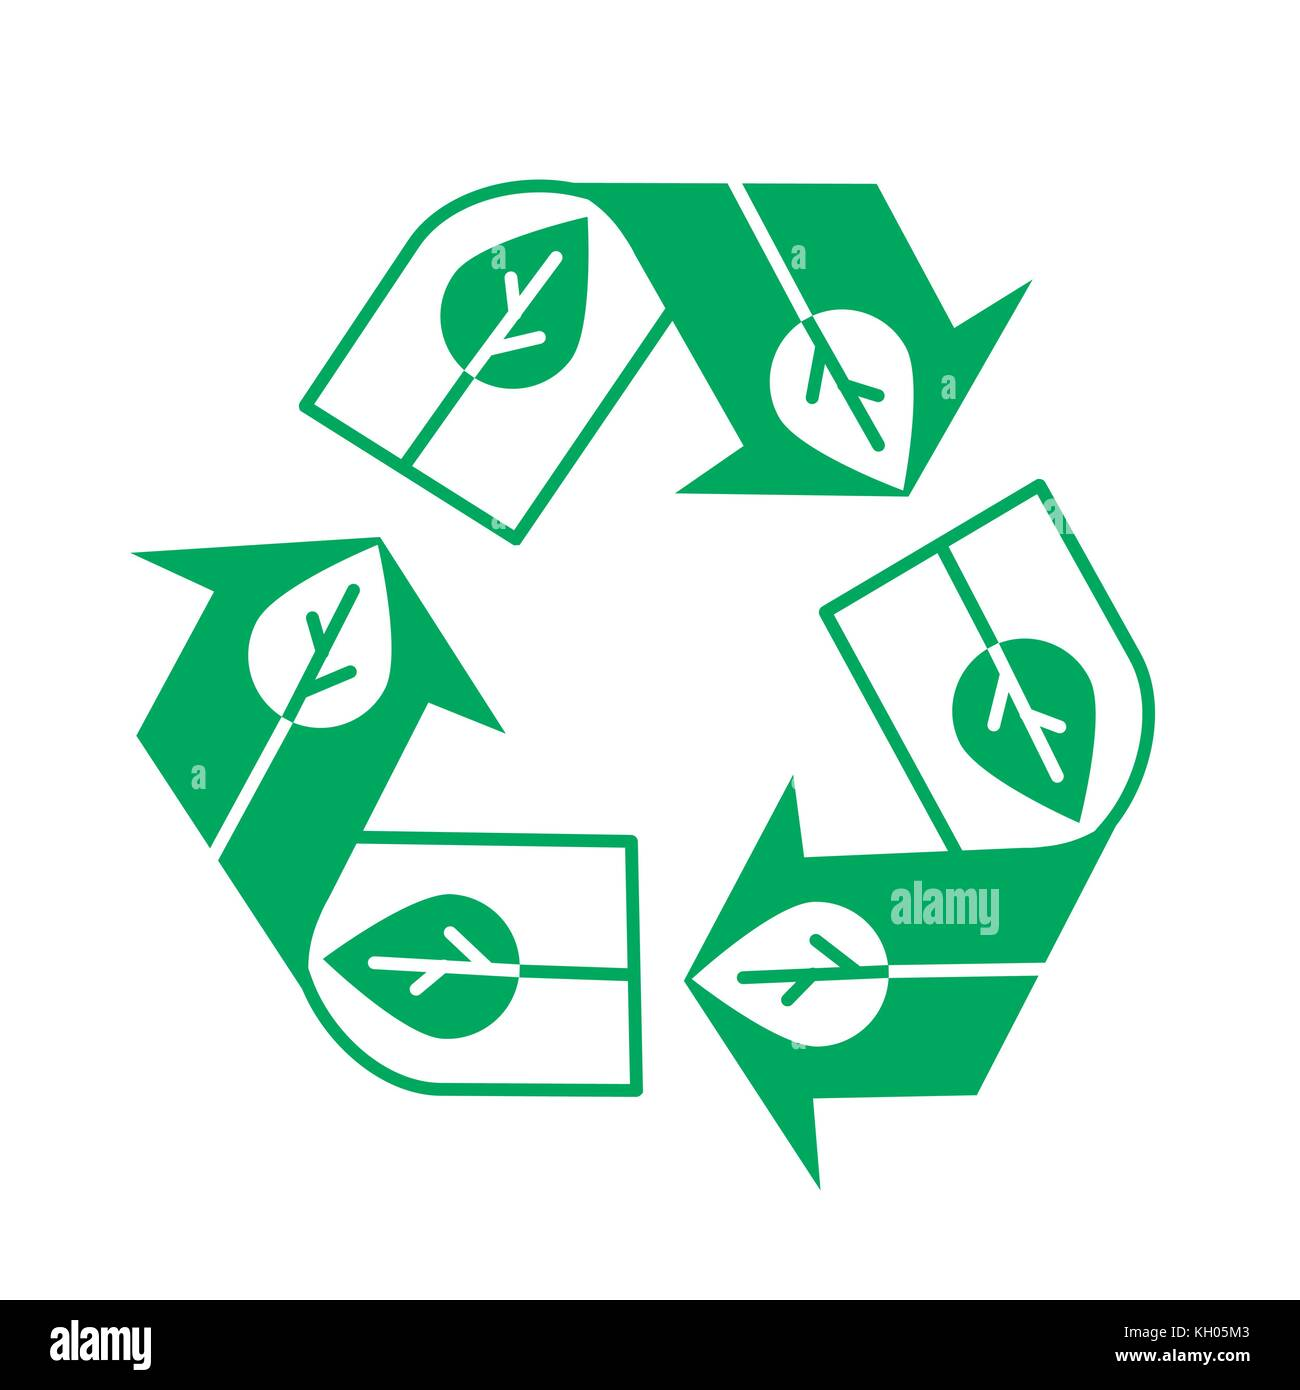 Recycled paper logo stock photos recycled paper logo stock concepts of processing paper in the view of the recycling icon in the form of a buycottarizona